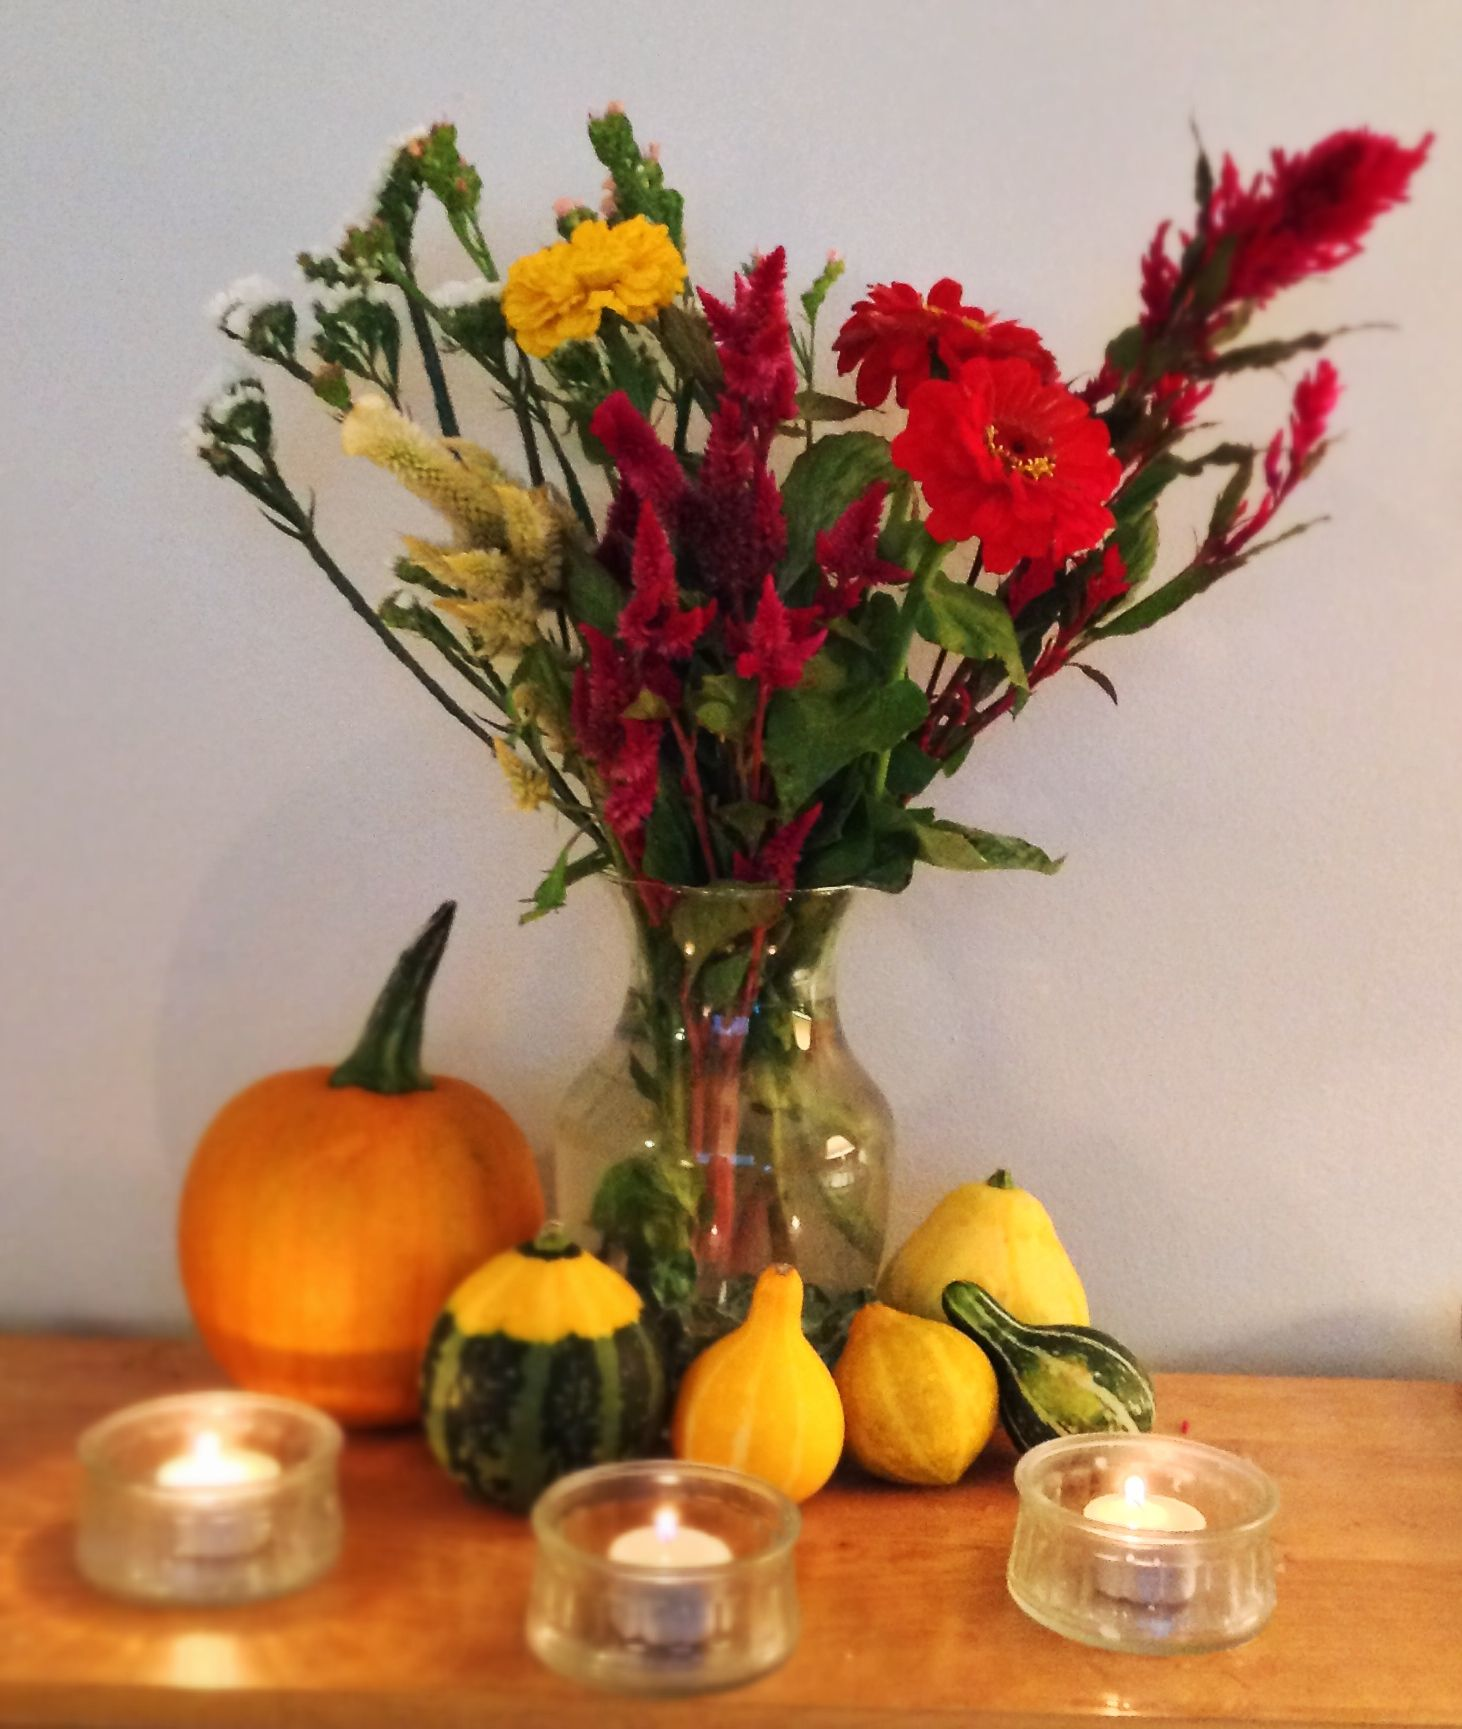 #thanksgiving #fall #mantle #decor   A few gourds and fresh flowers are all you need to make your mantle piece shout FALL! Put 1/2 a tablespoon of bleach in the vase to help preserve the flowers!